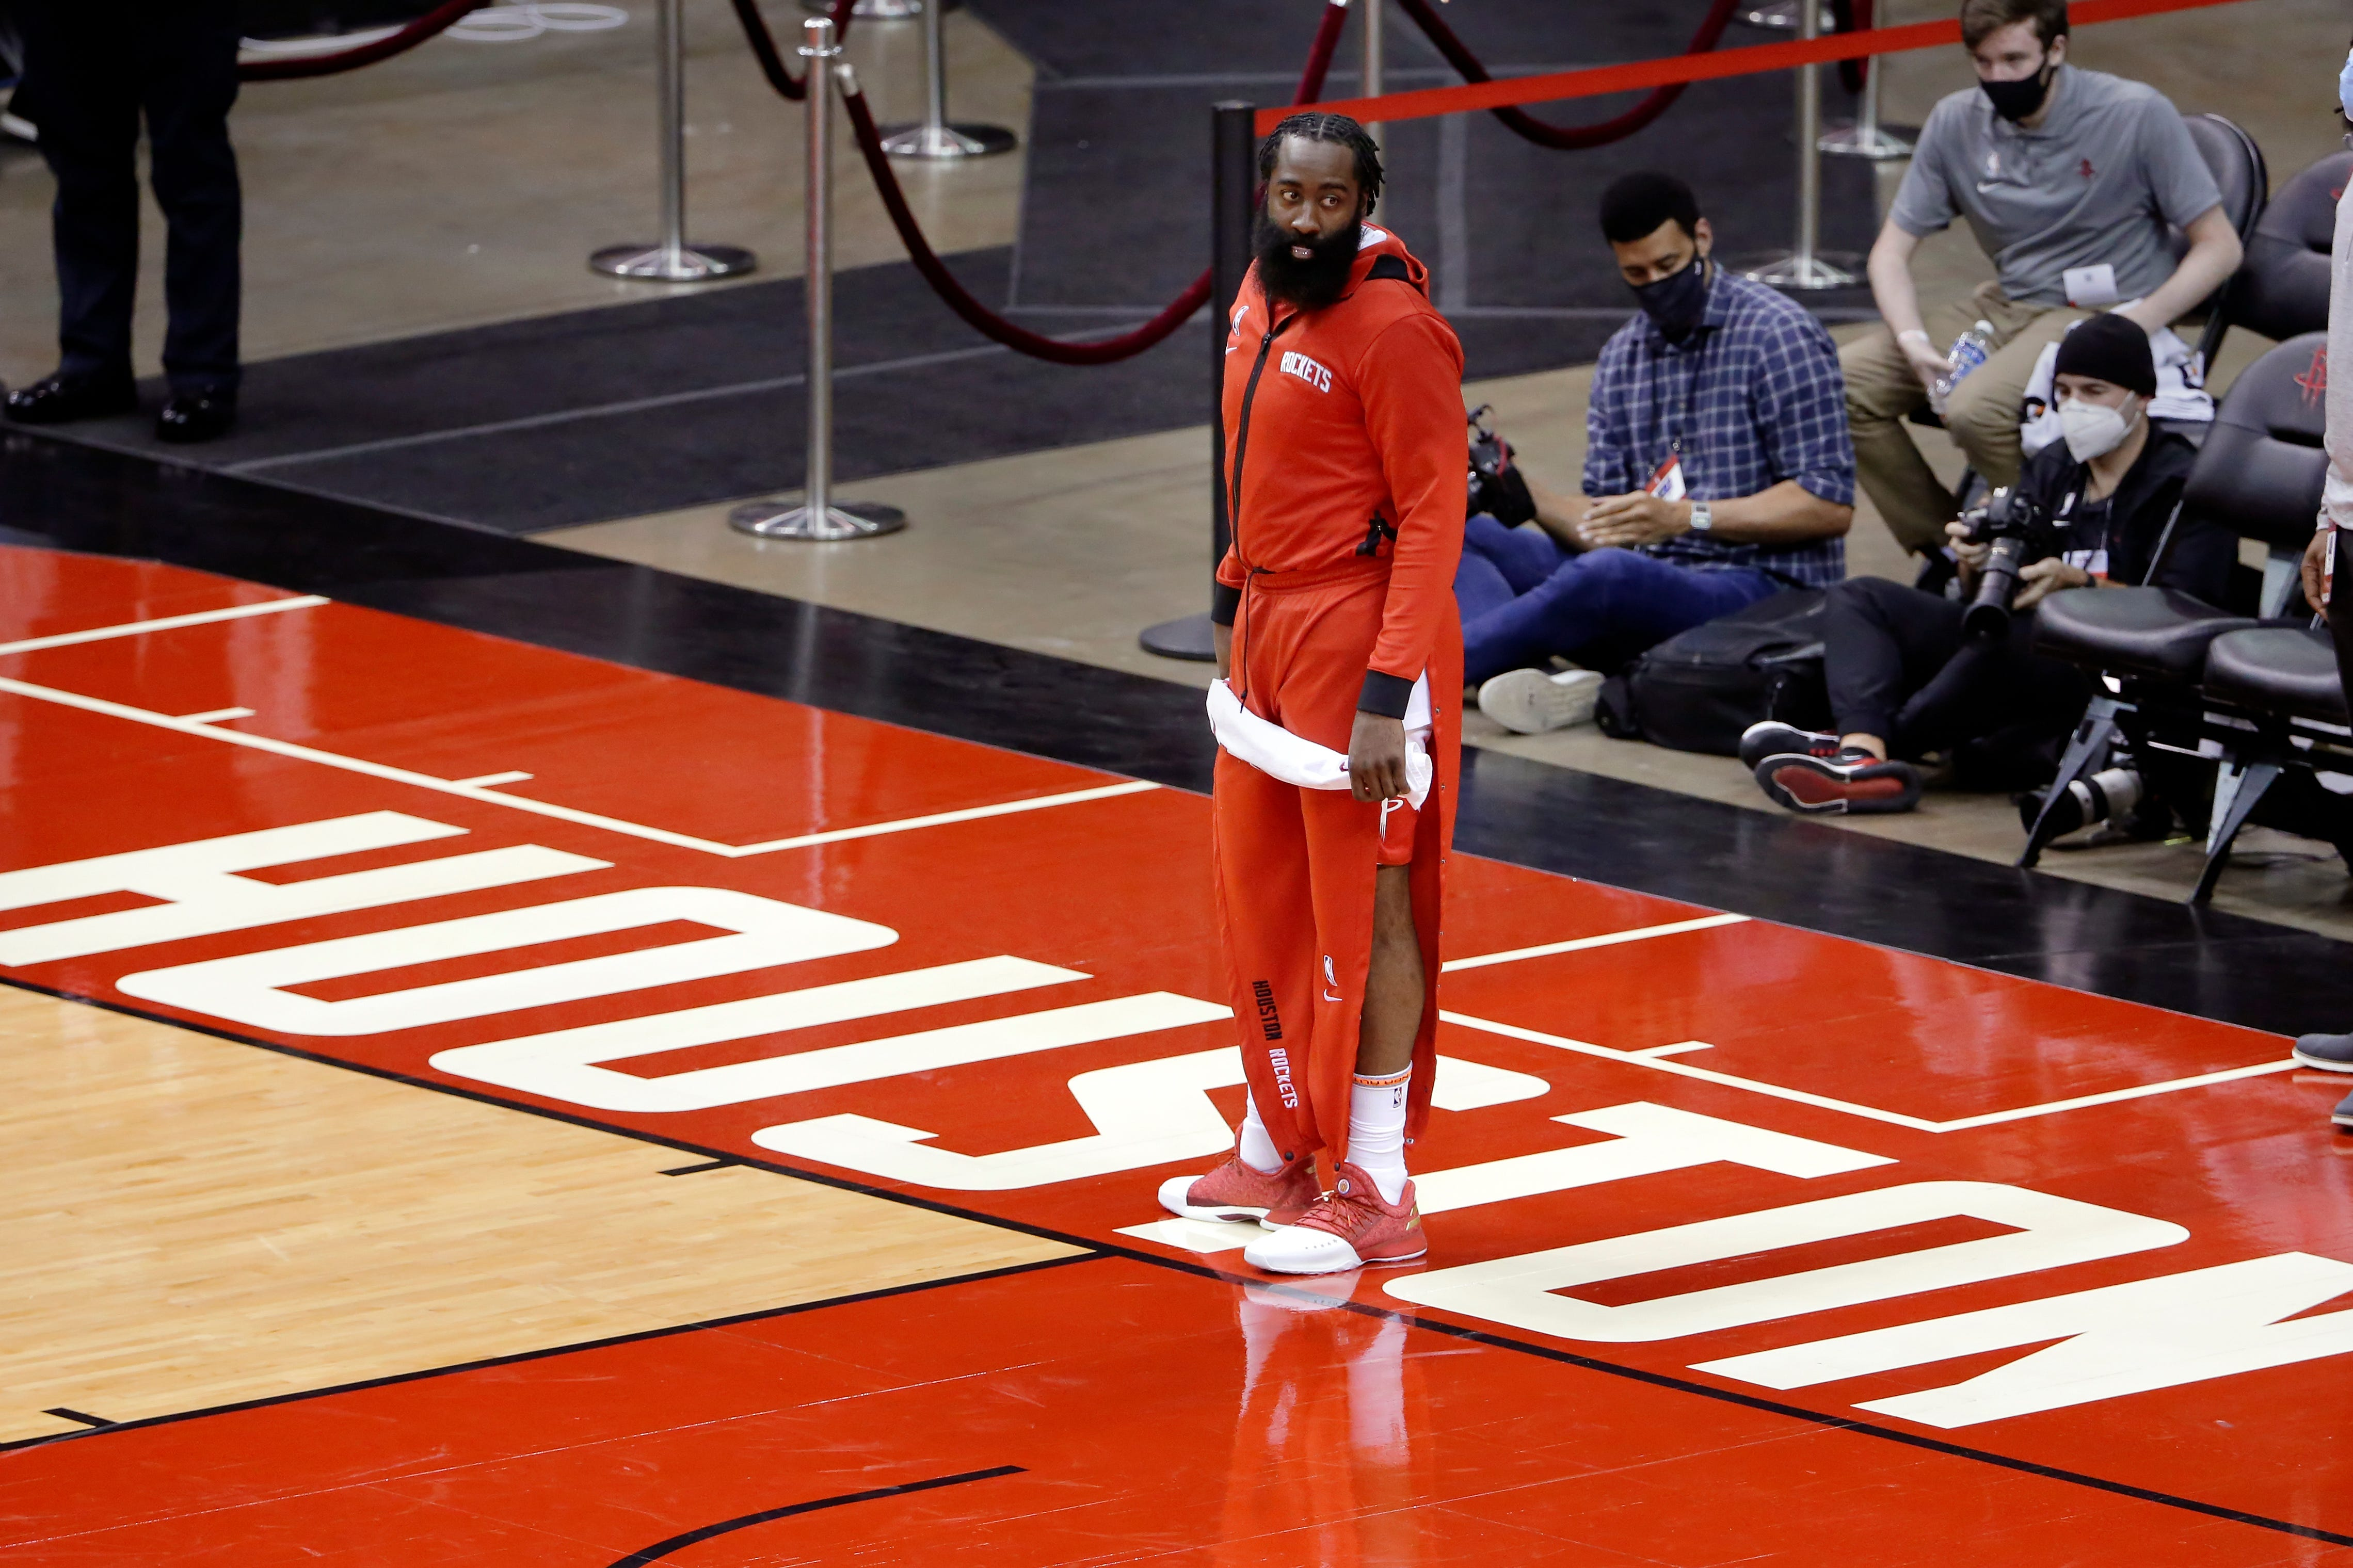 'I think it can be amicable for both sides': Reggie Miller, Chris Webber say trading James Harden could also help Rockets